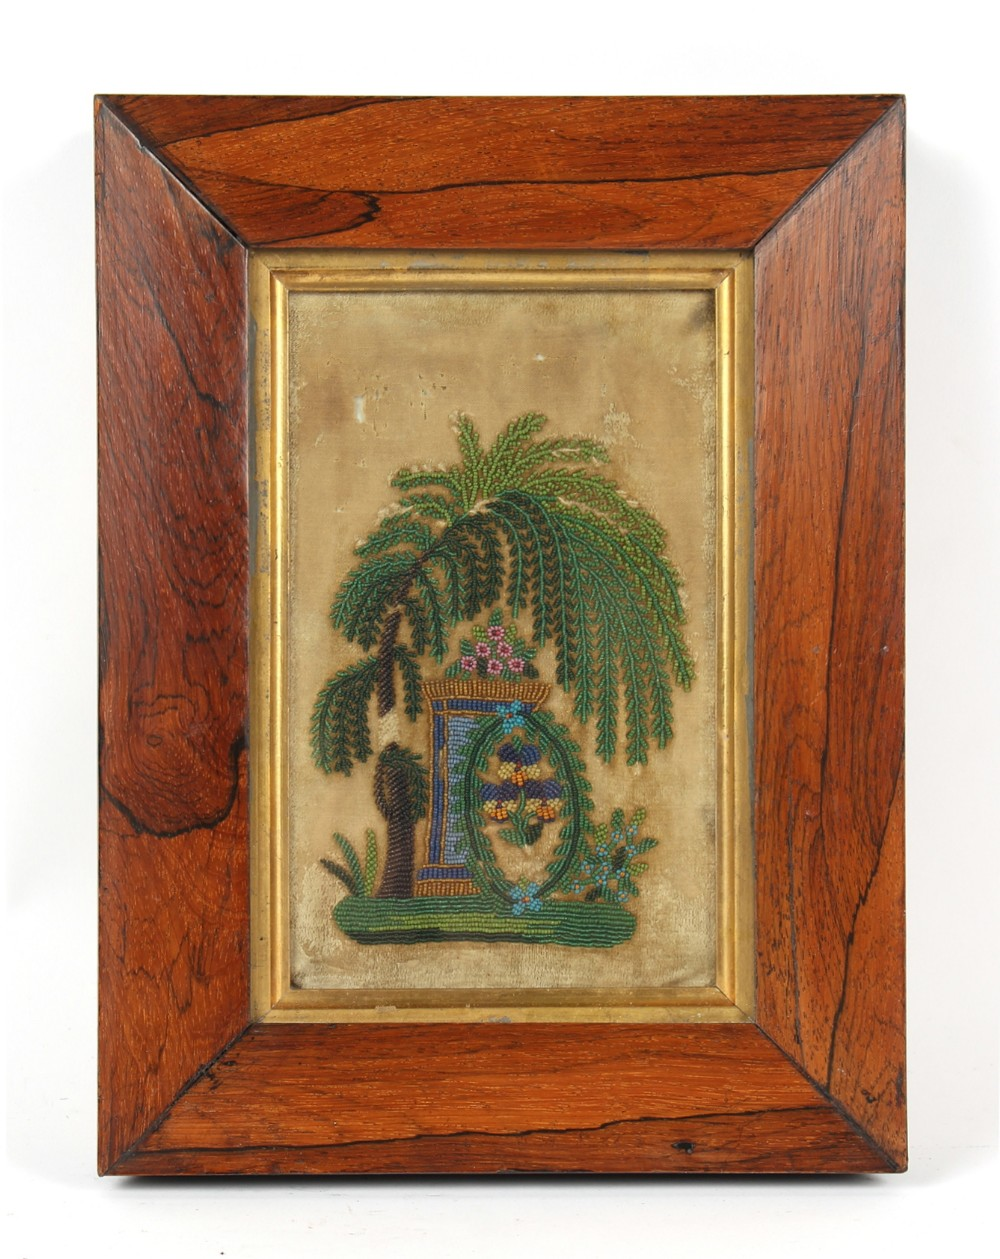 Property of a gentleman - a 19th century bead work picture depicting a palm tree & flowers on a